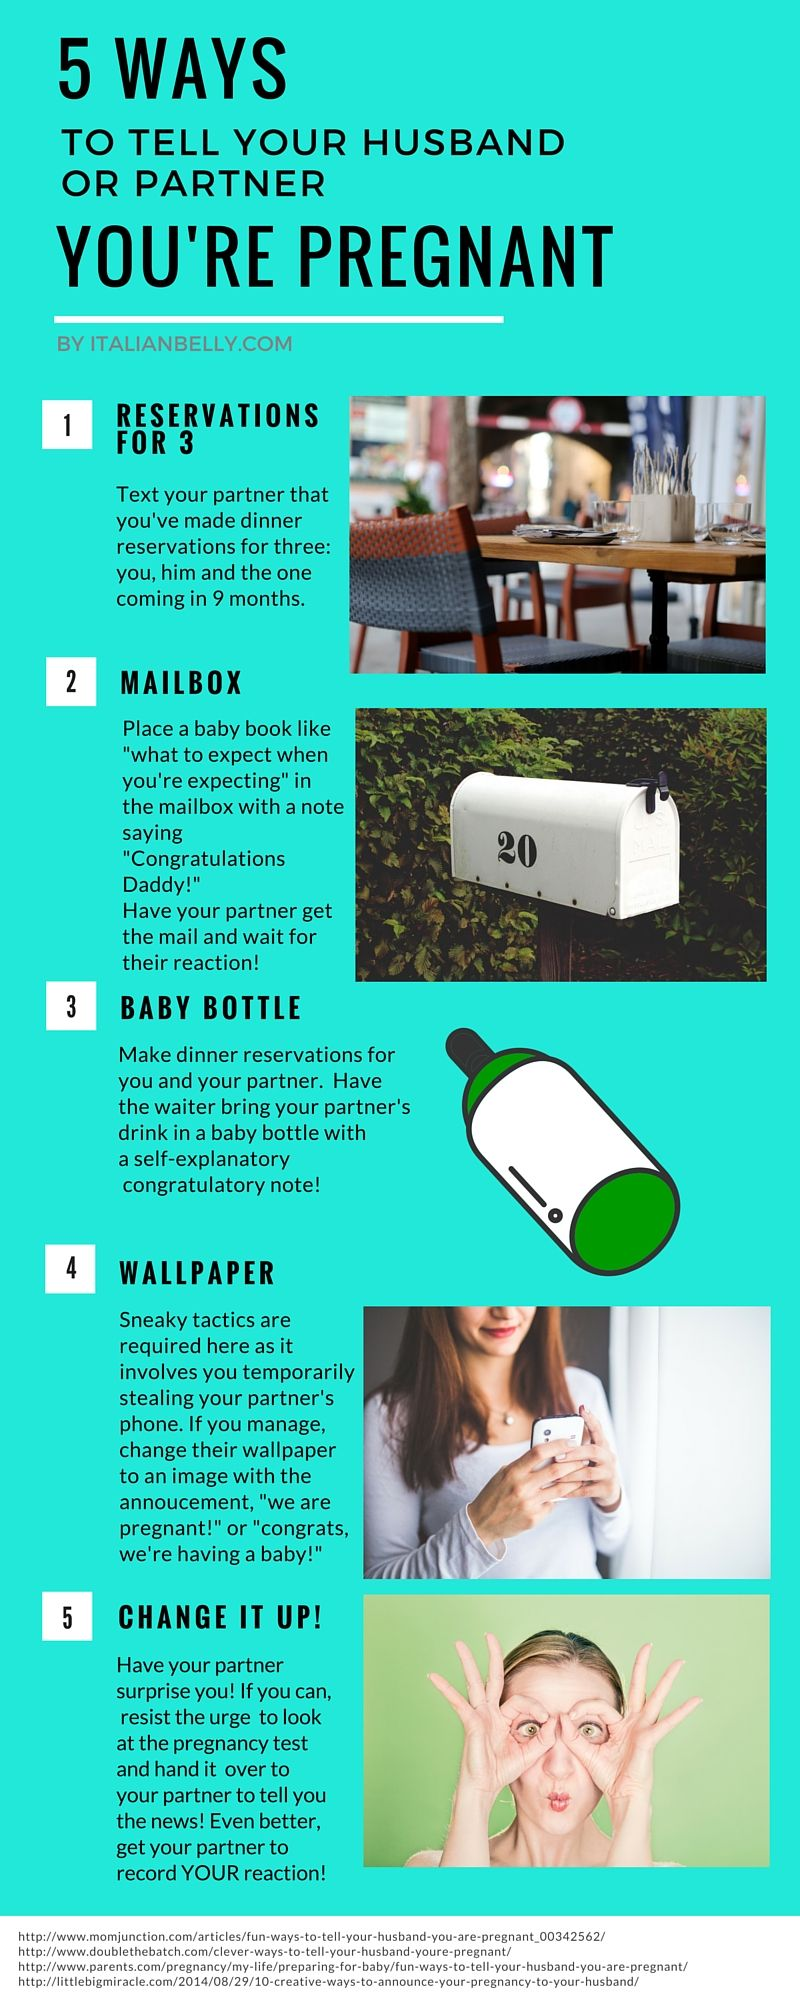 5 creative ways to tell your husband youre pregnant